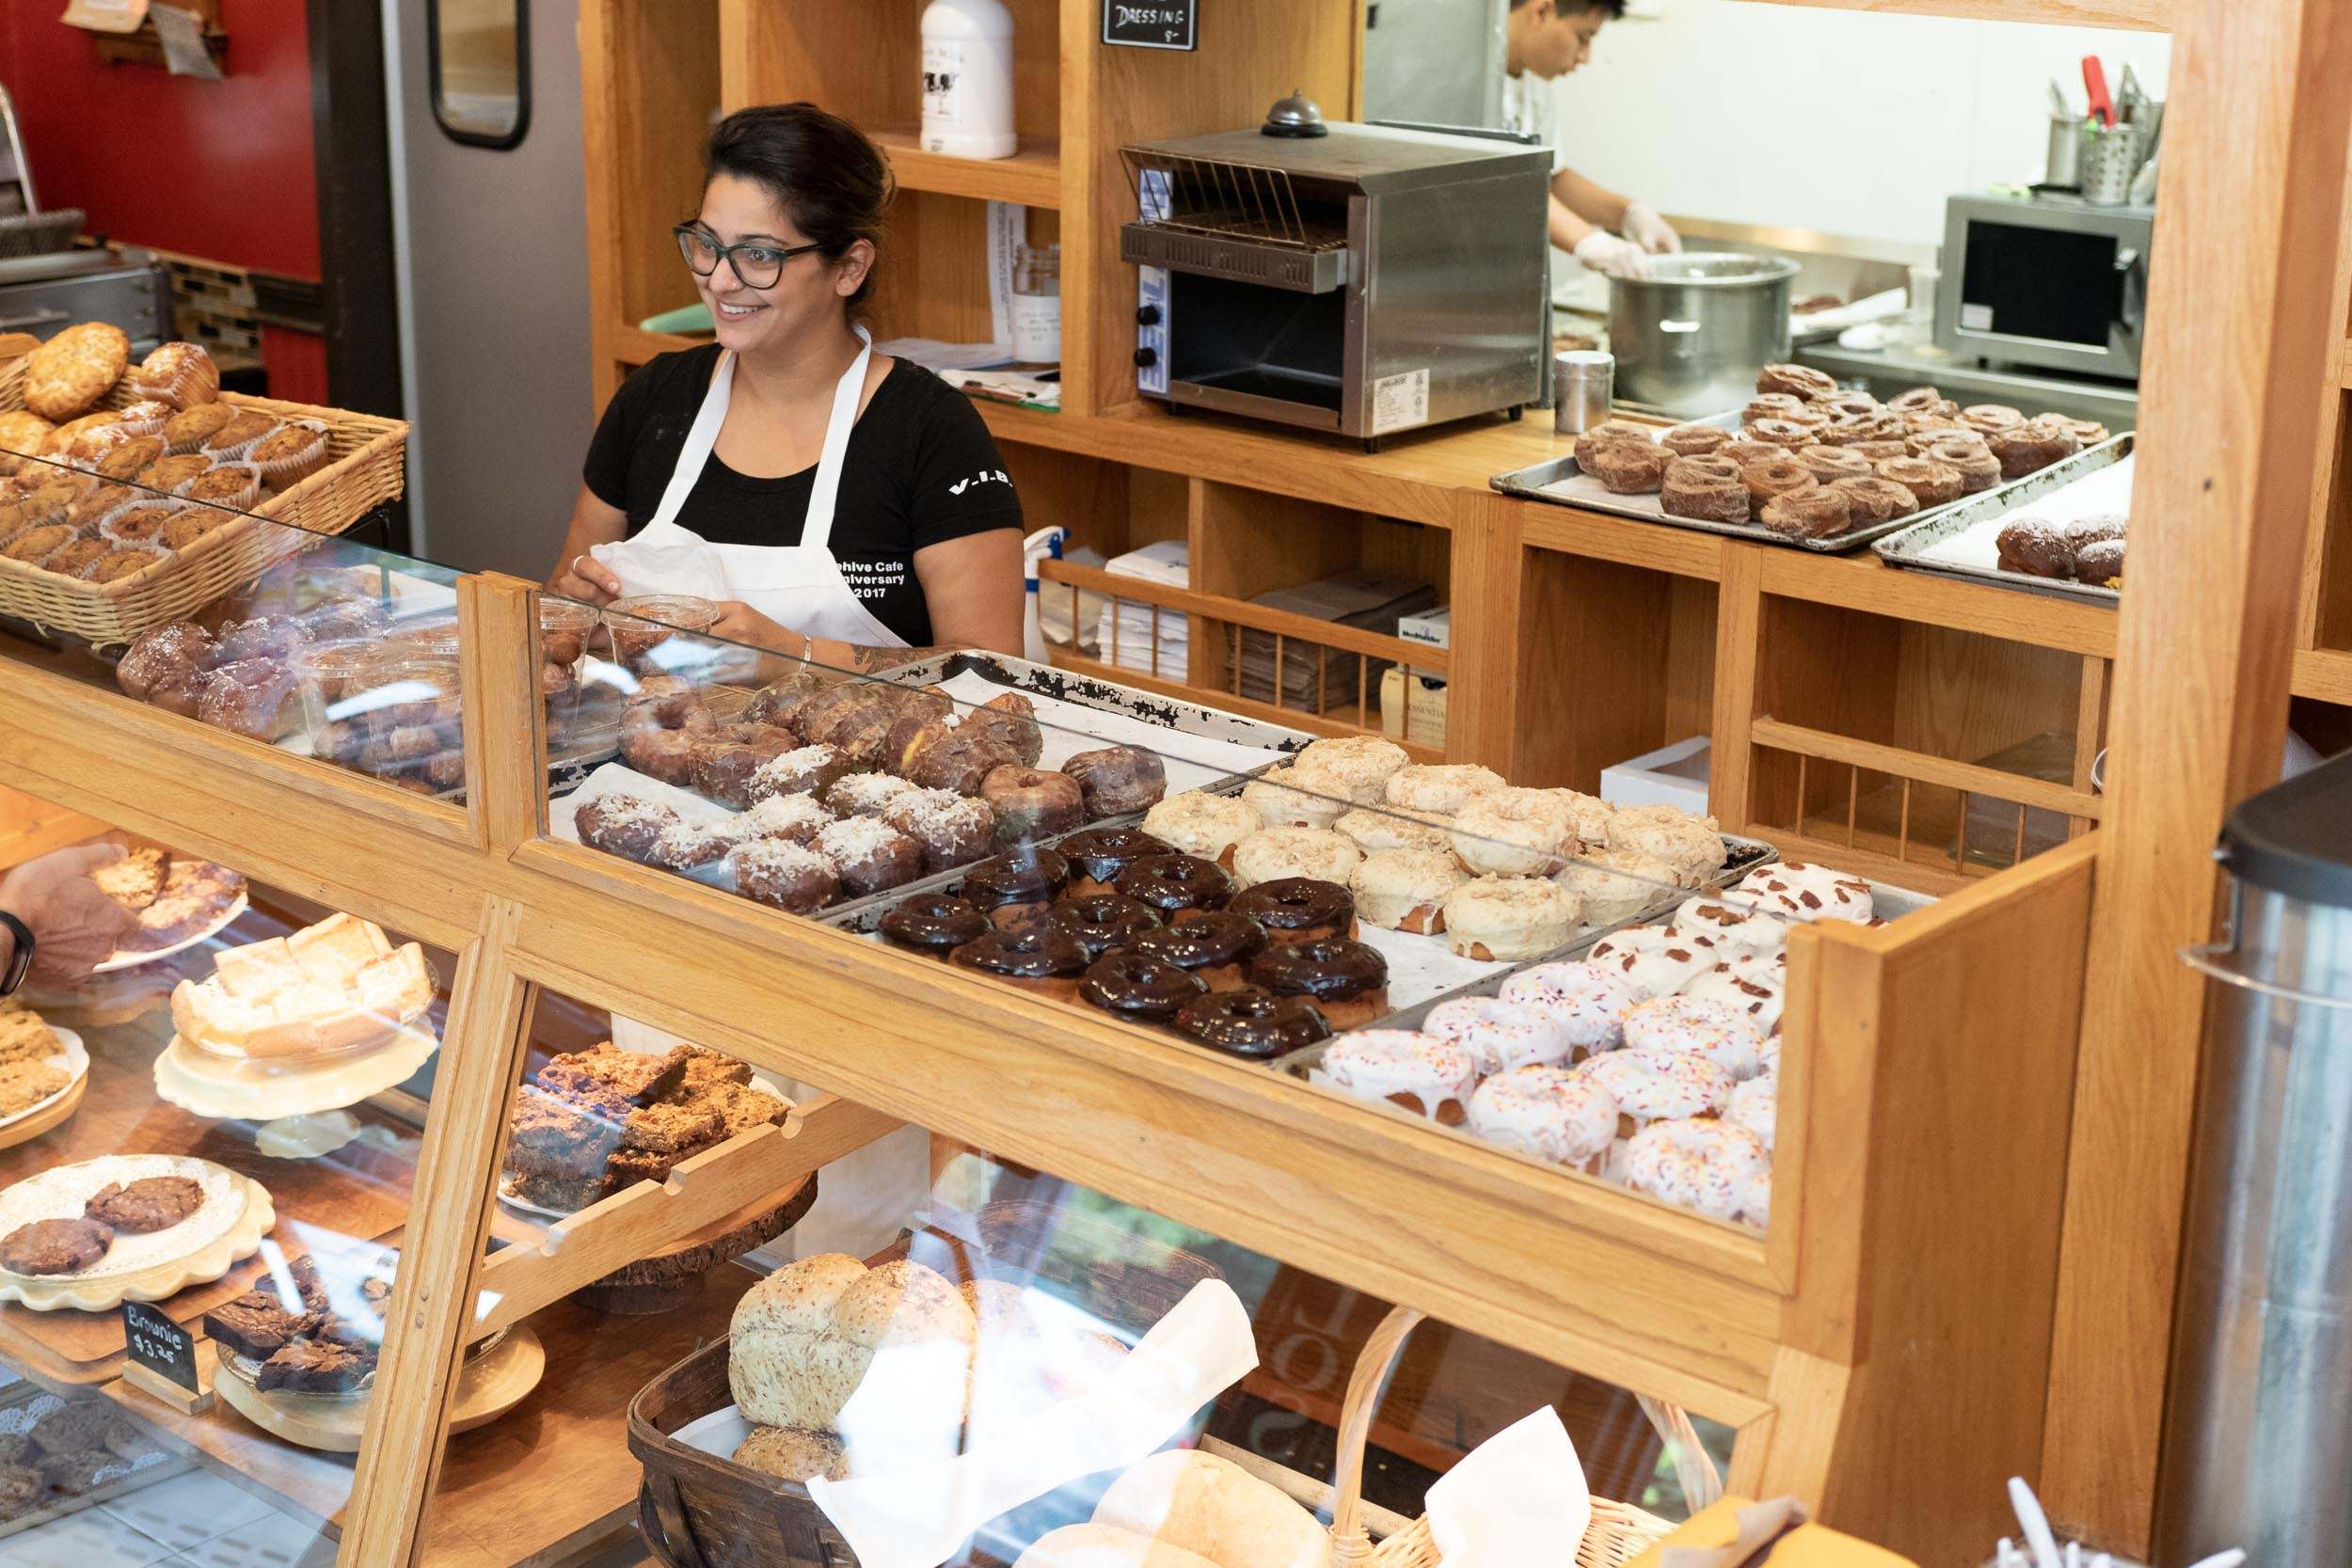 Beehive Pantry with fresh pastries and food